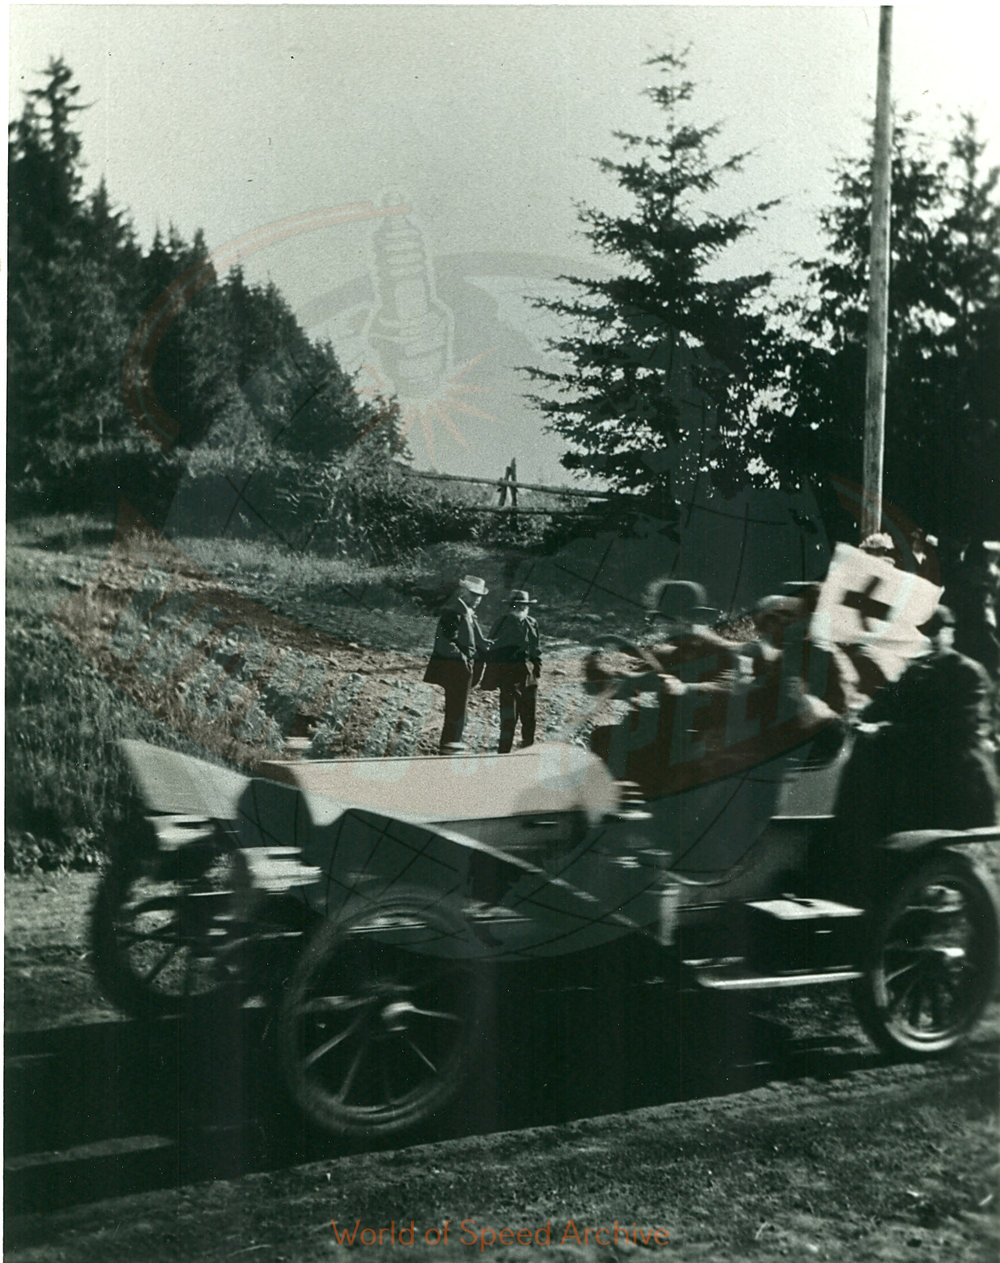 Back of photograph reads: First aid car at intersection of Bairdsdale and Division looking SW